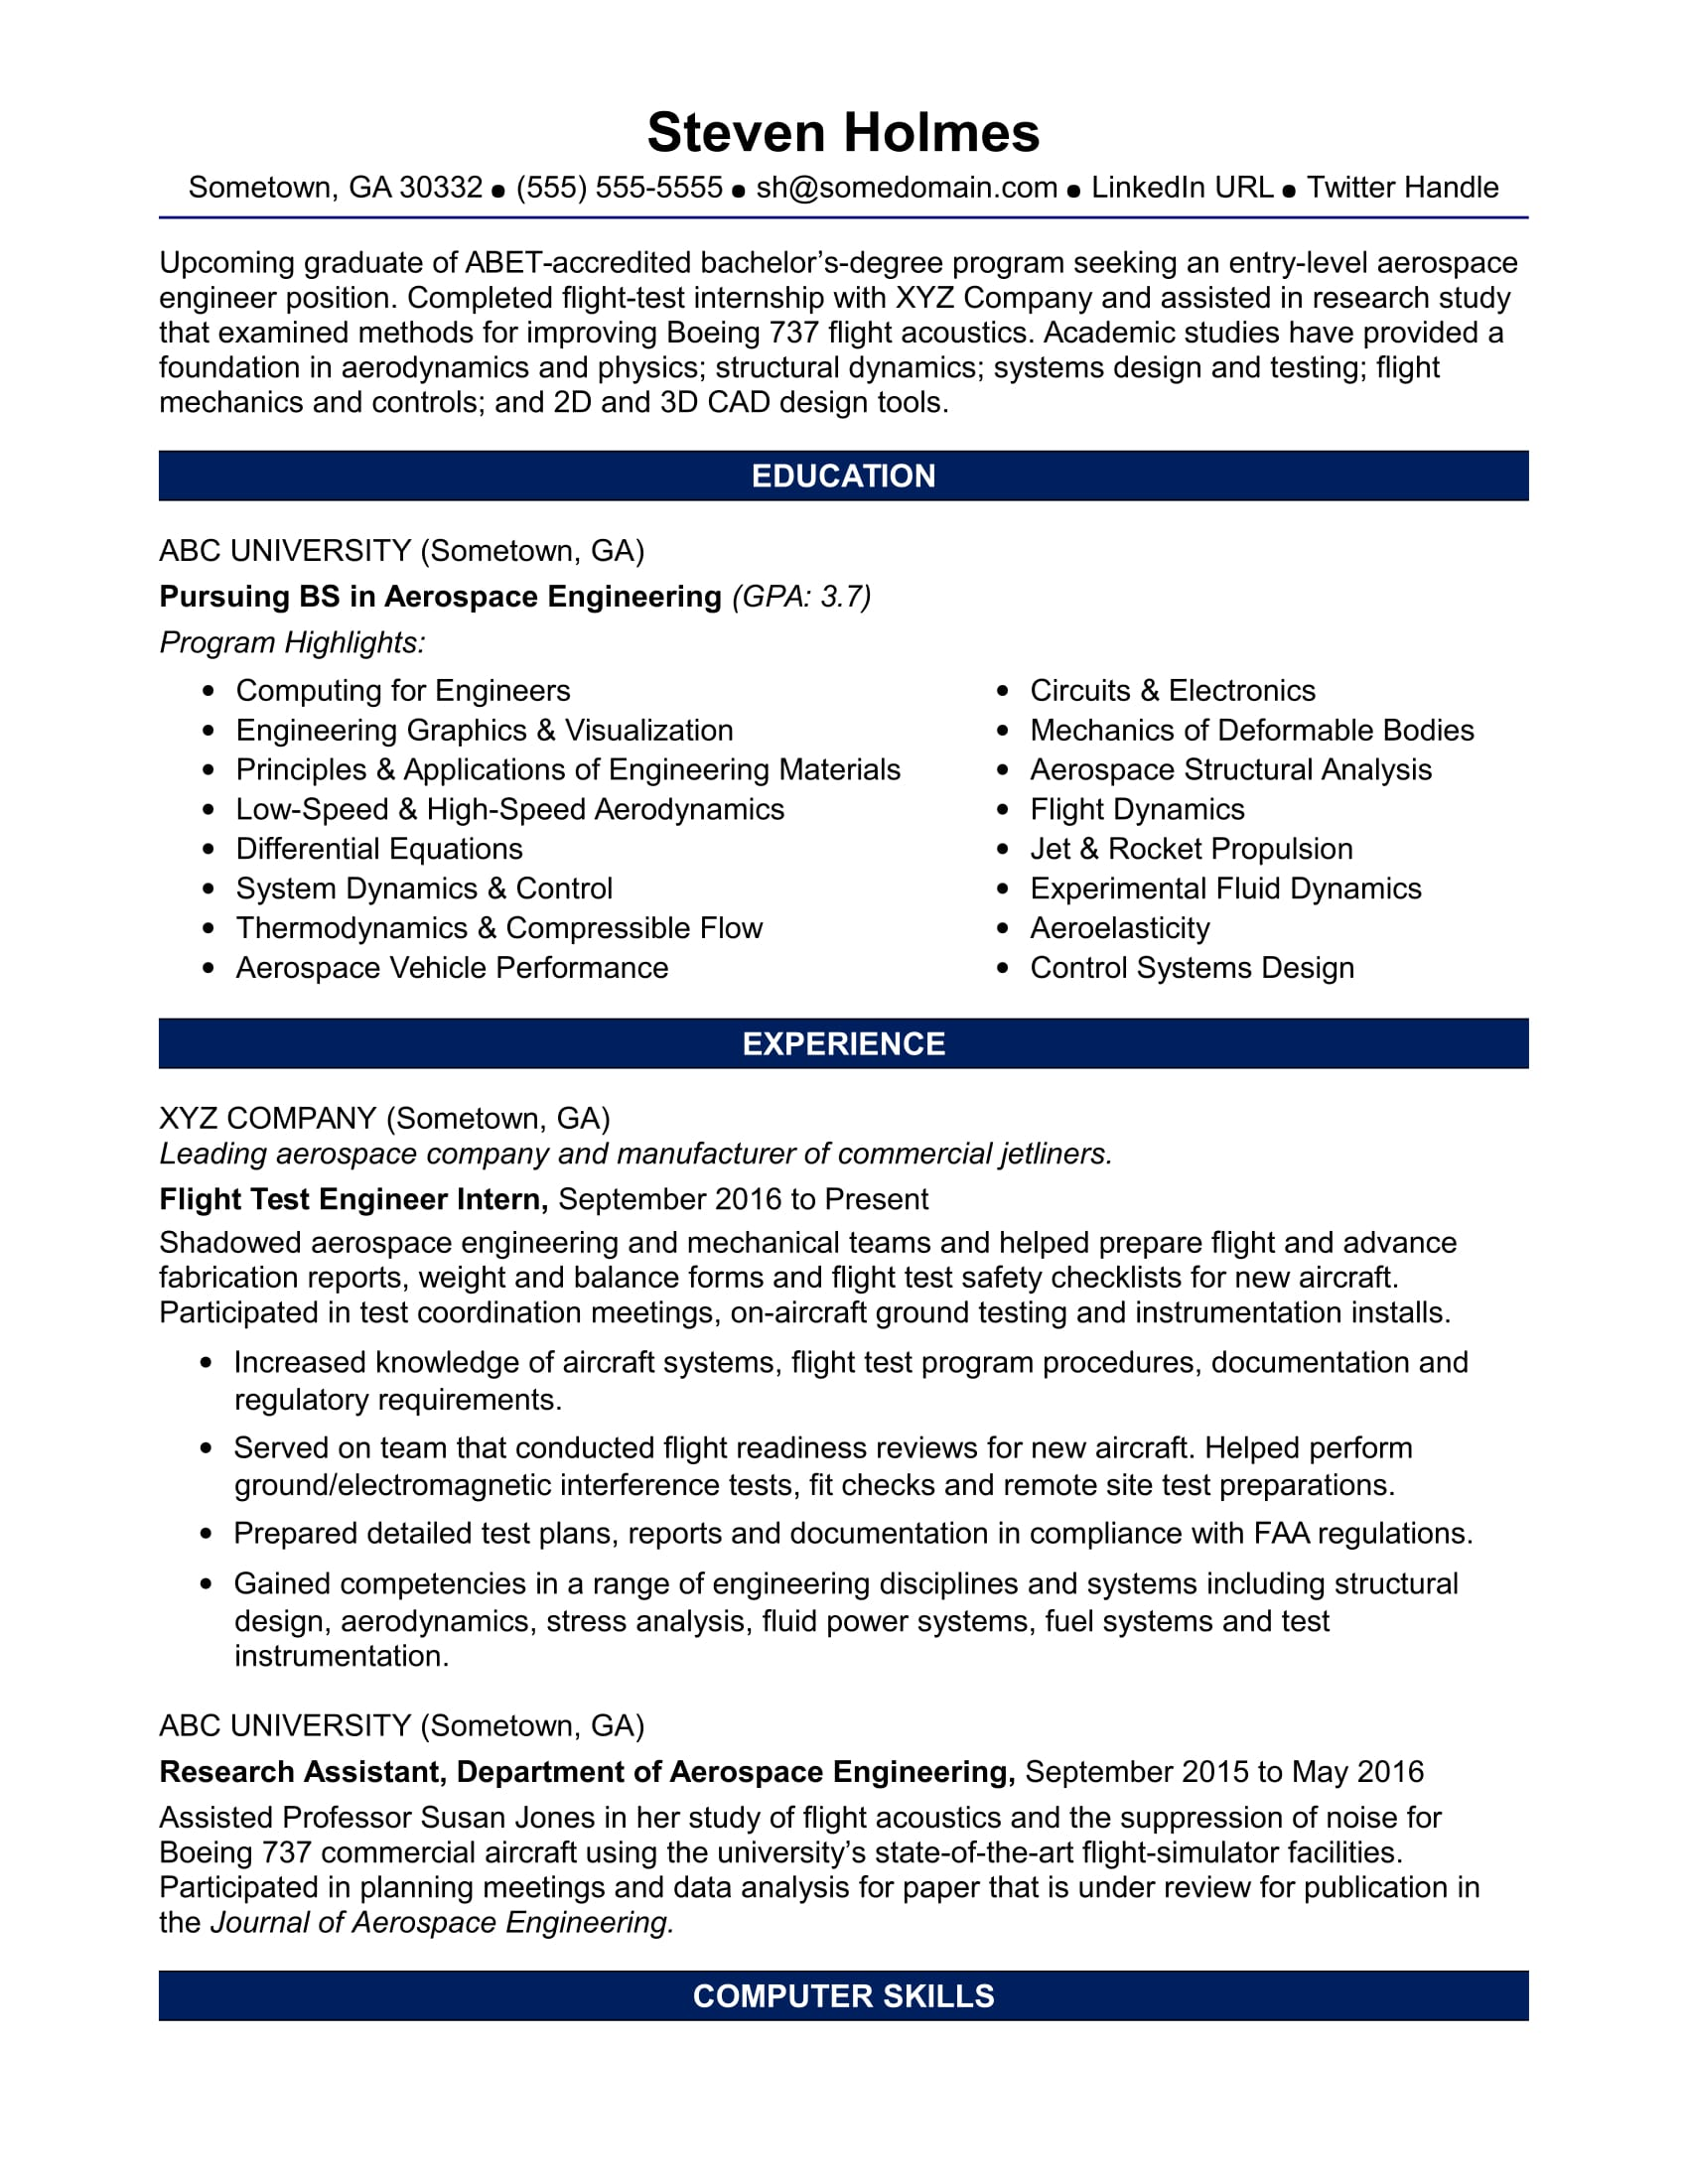 sample resume for an entry level aerospace engineer